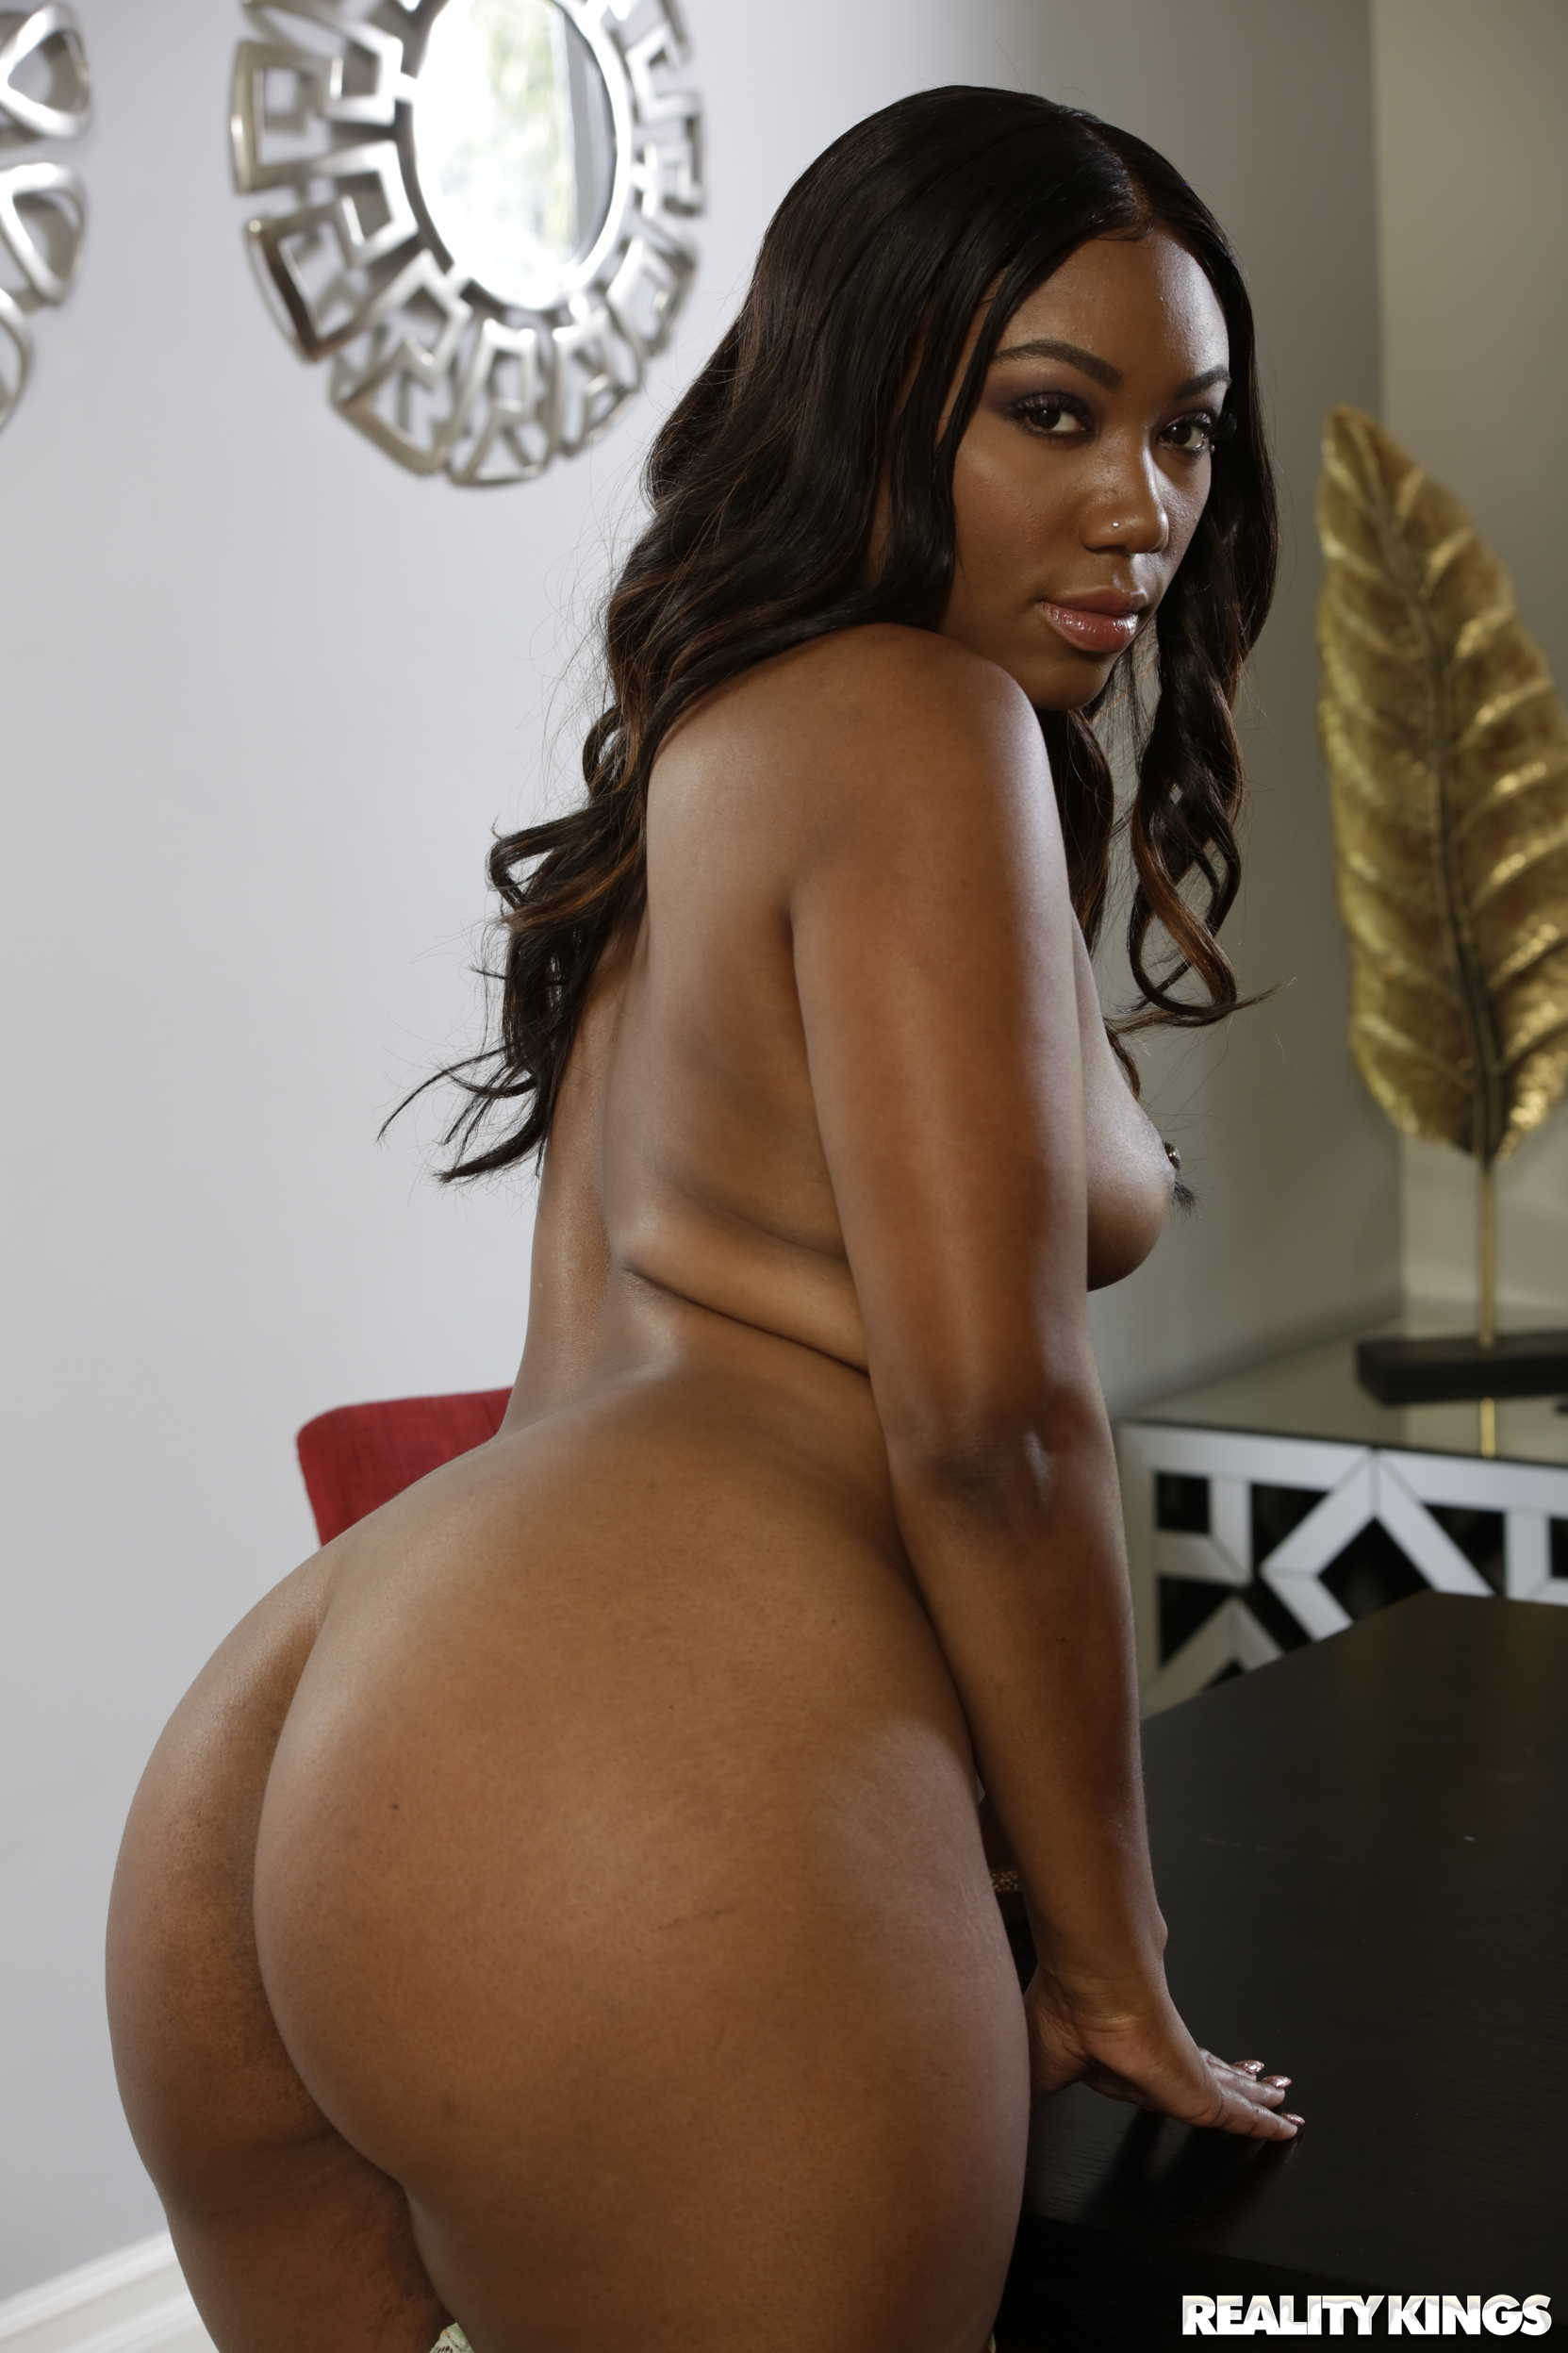 Reality Kings 'Hold The Line And This Dick' starring Chanell Heart (Photo 36)